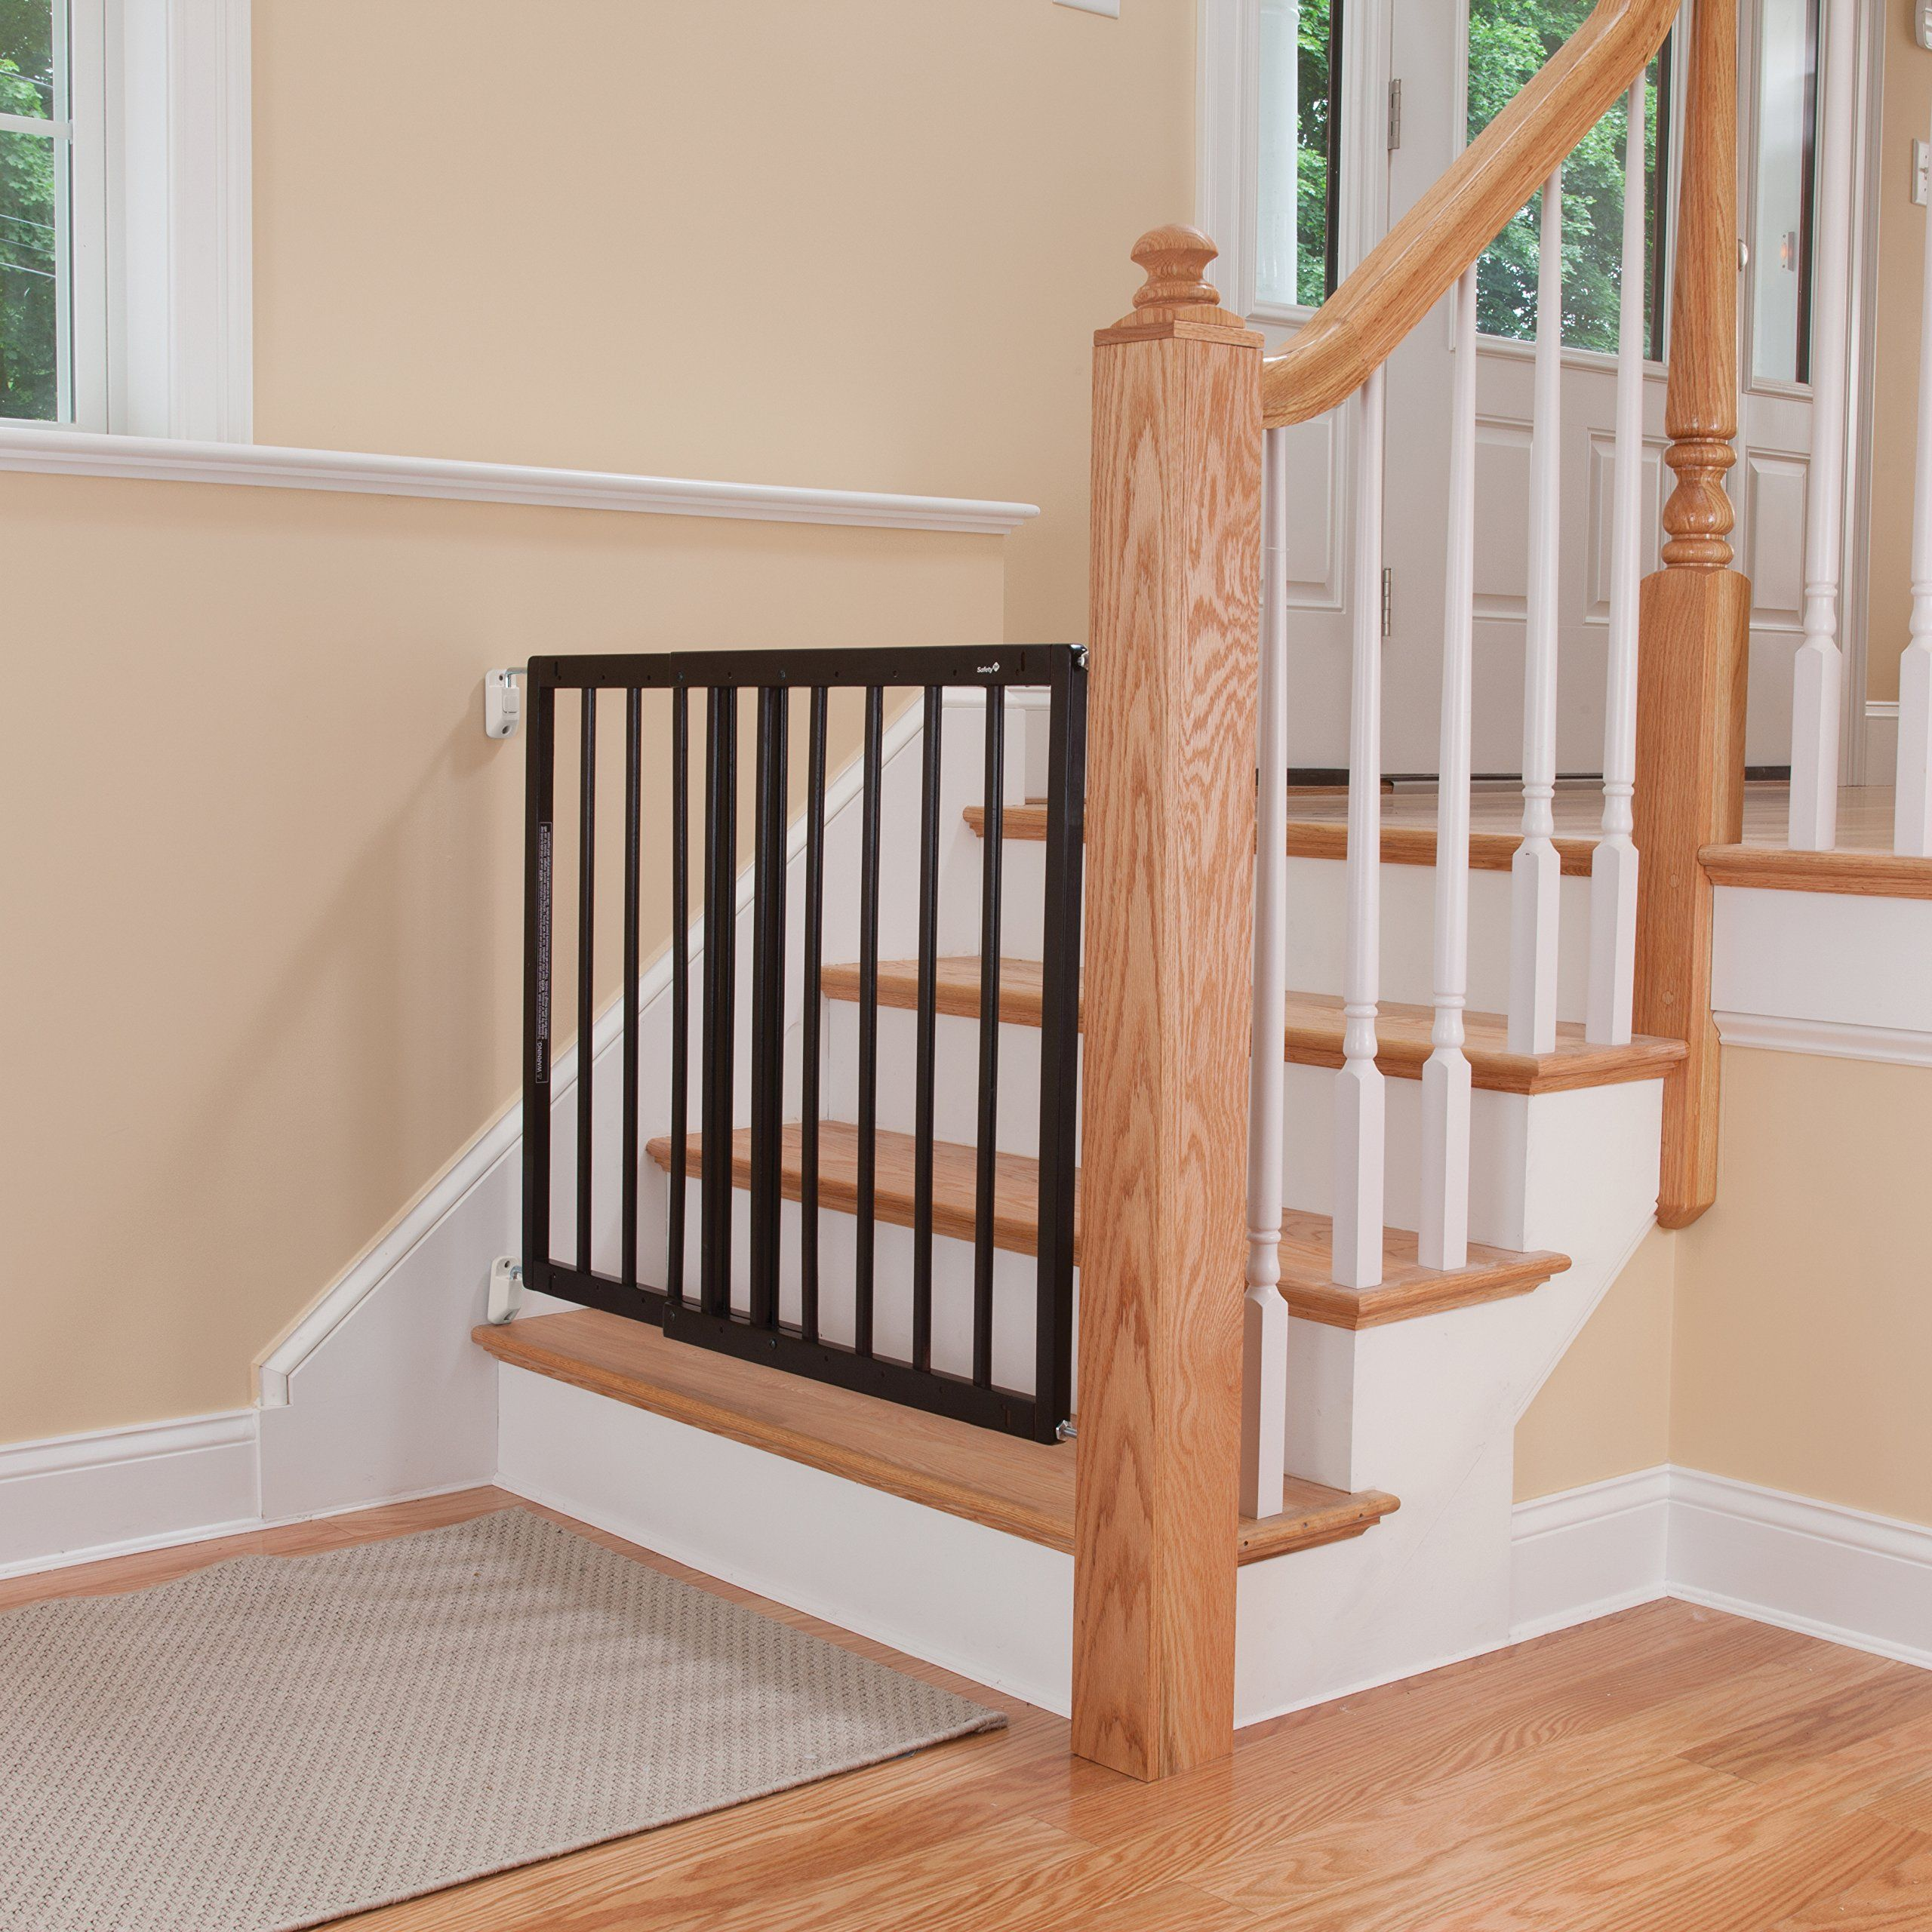 AmazonSmile Safety 1st Top of Stairs Decor Swing Gate